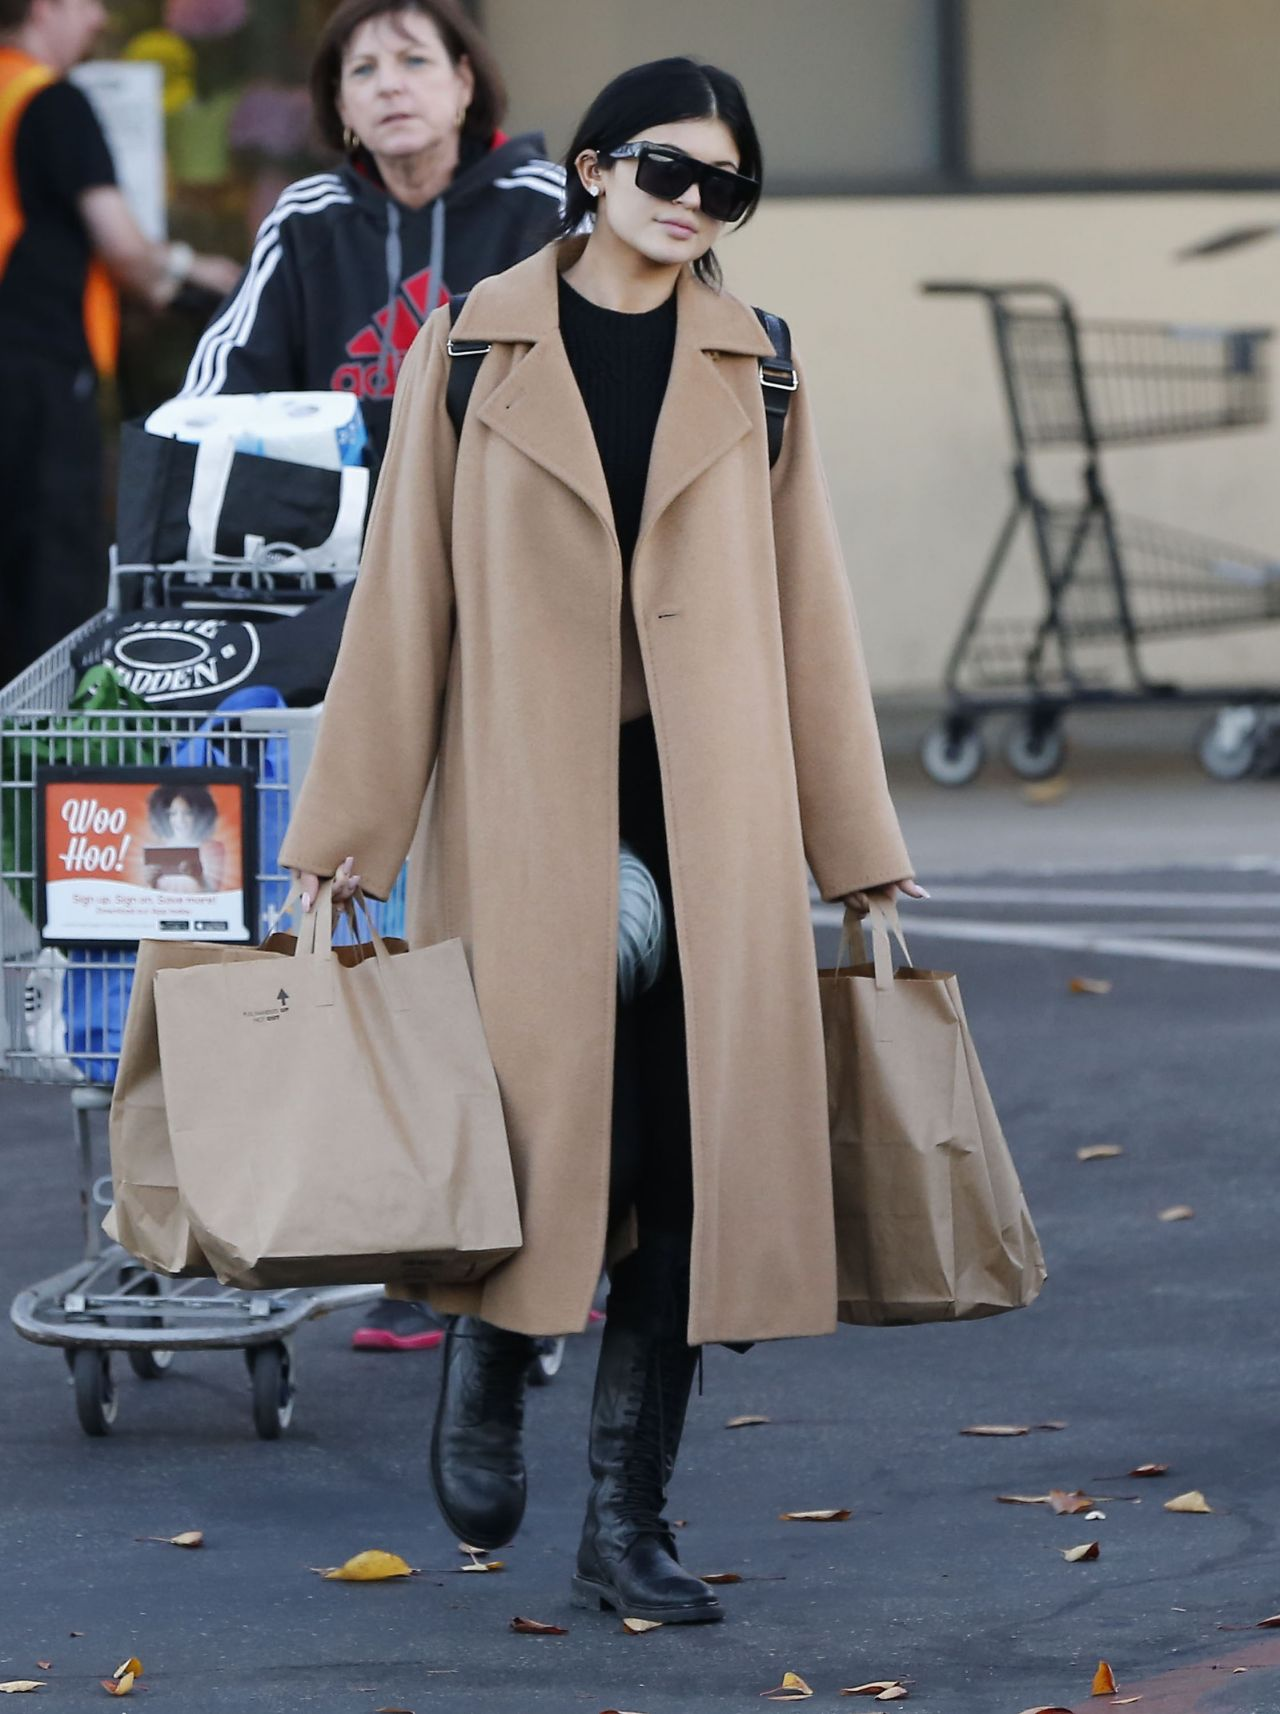 6563642913 furthermore Kylie Jenner 2015 Lingerie Style Shopping At Ralph 8217 S In Calabasas December 2014 also 4543884324 as well Navel Oranges further Minute Maid Lemonade 6 Pack 16 9 Oz. on grocery shopping